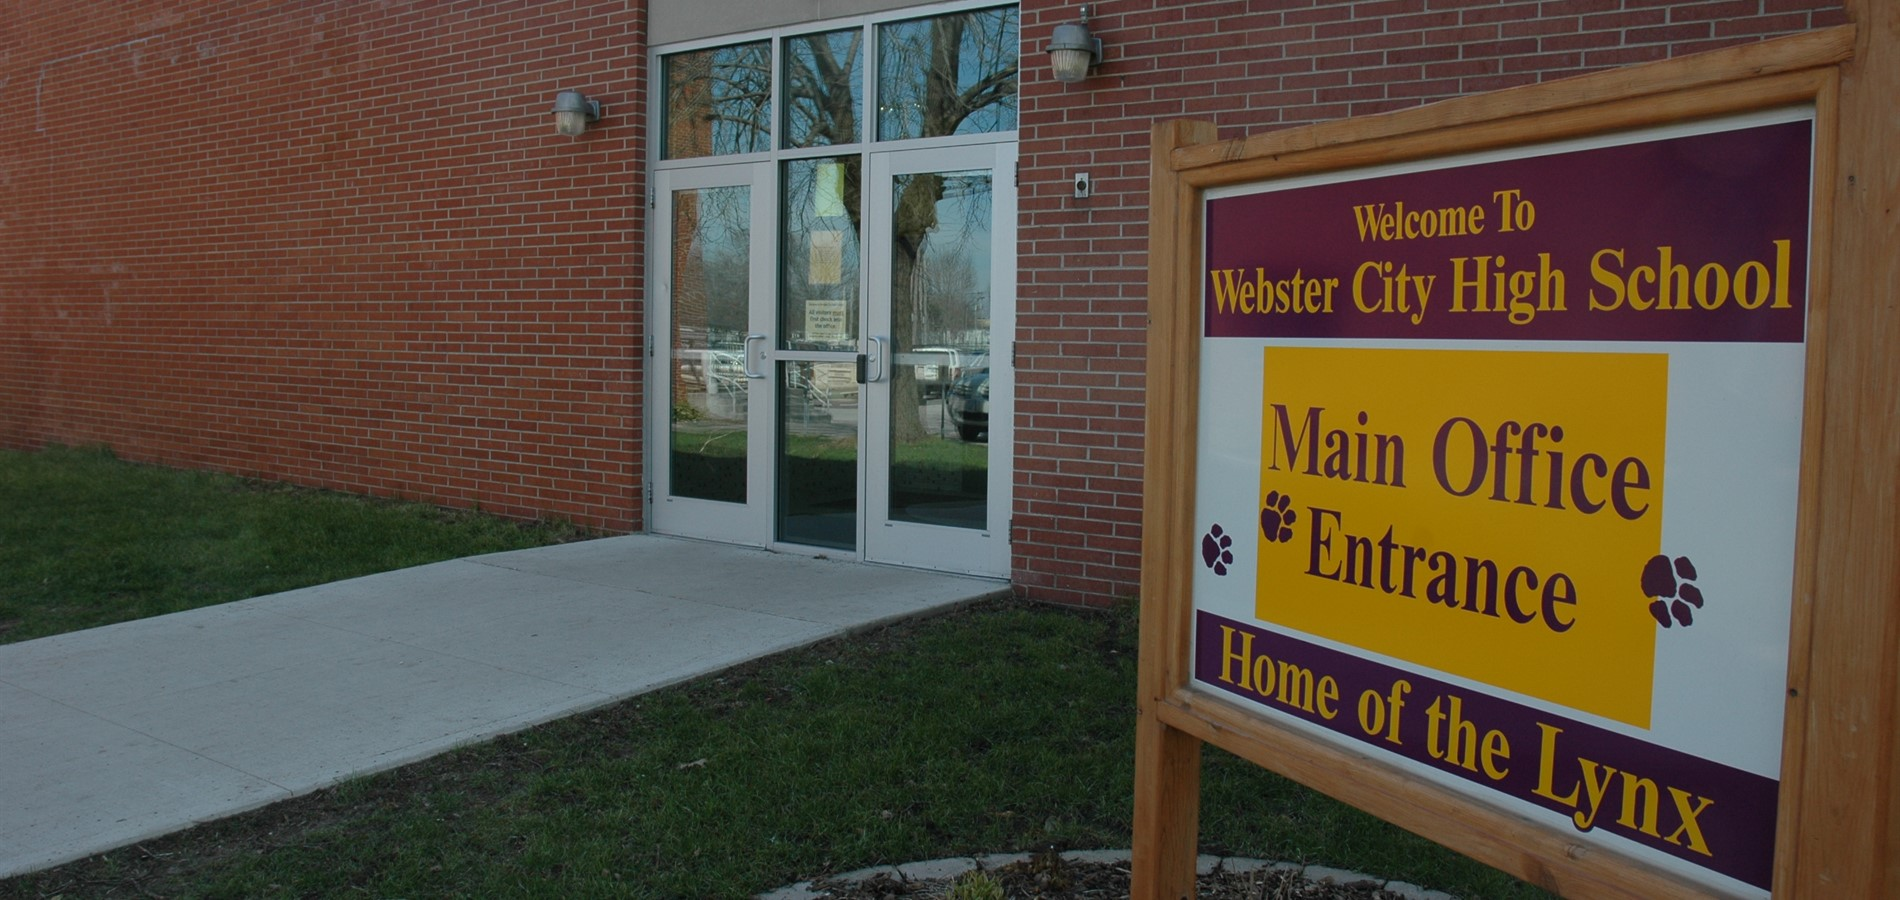 Webster City High School main building entrance and welcome sign